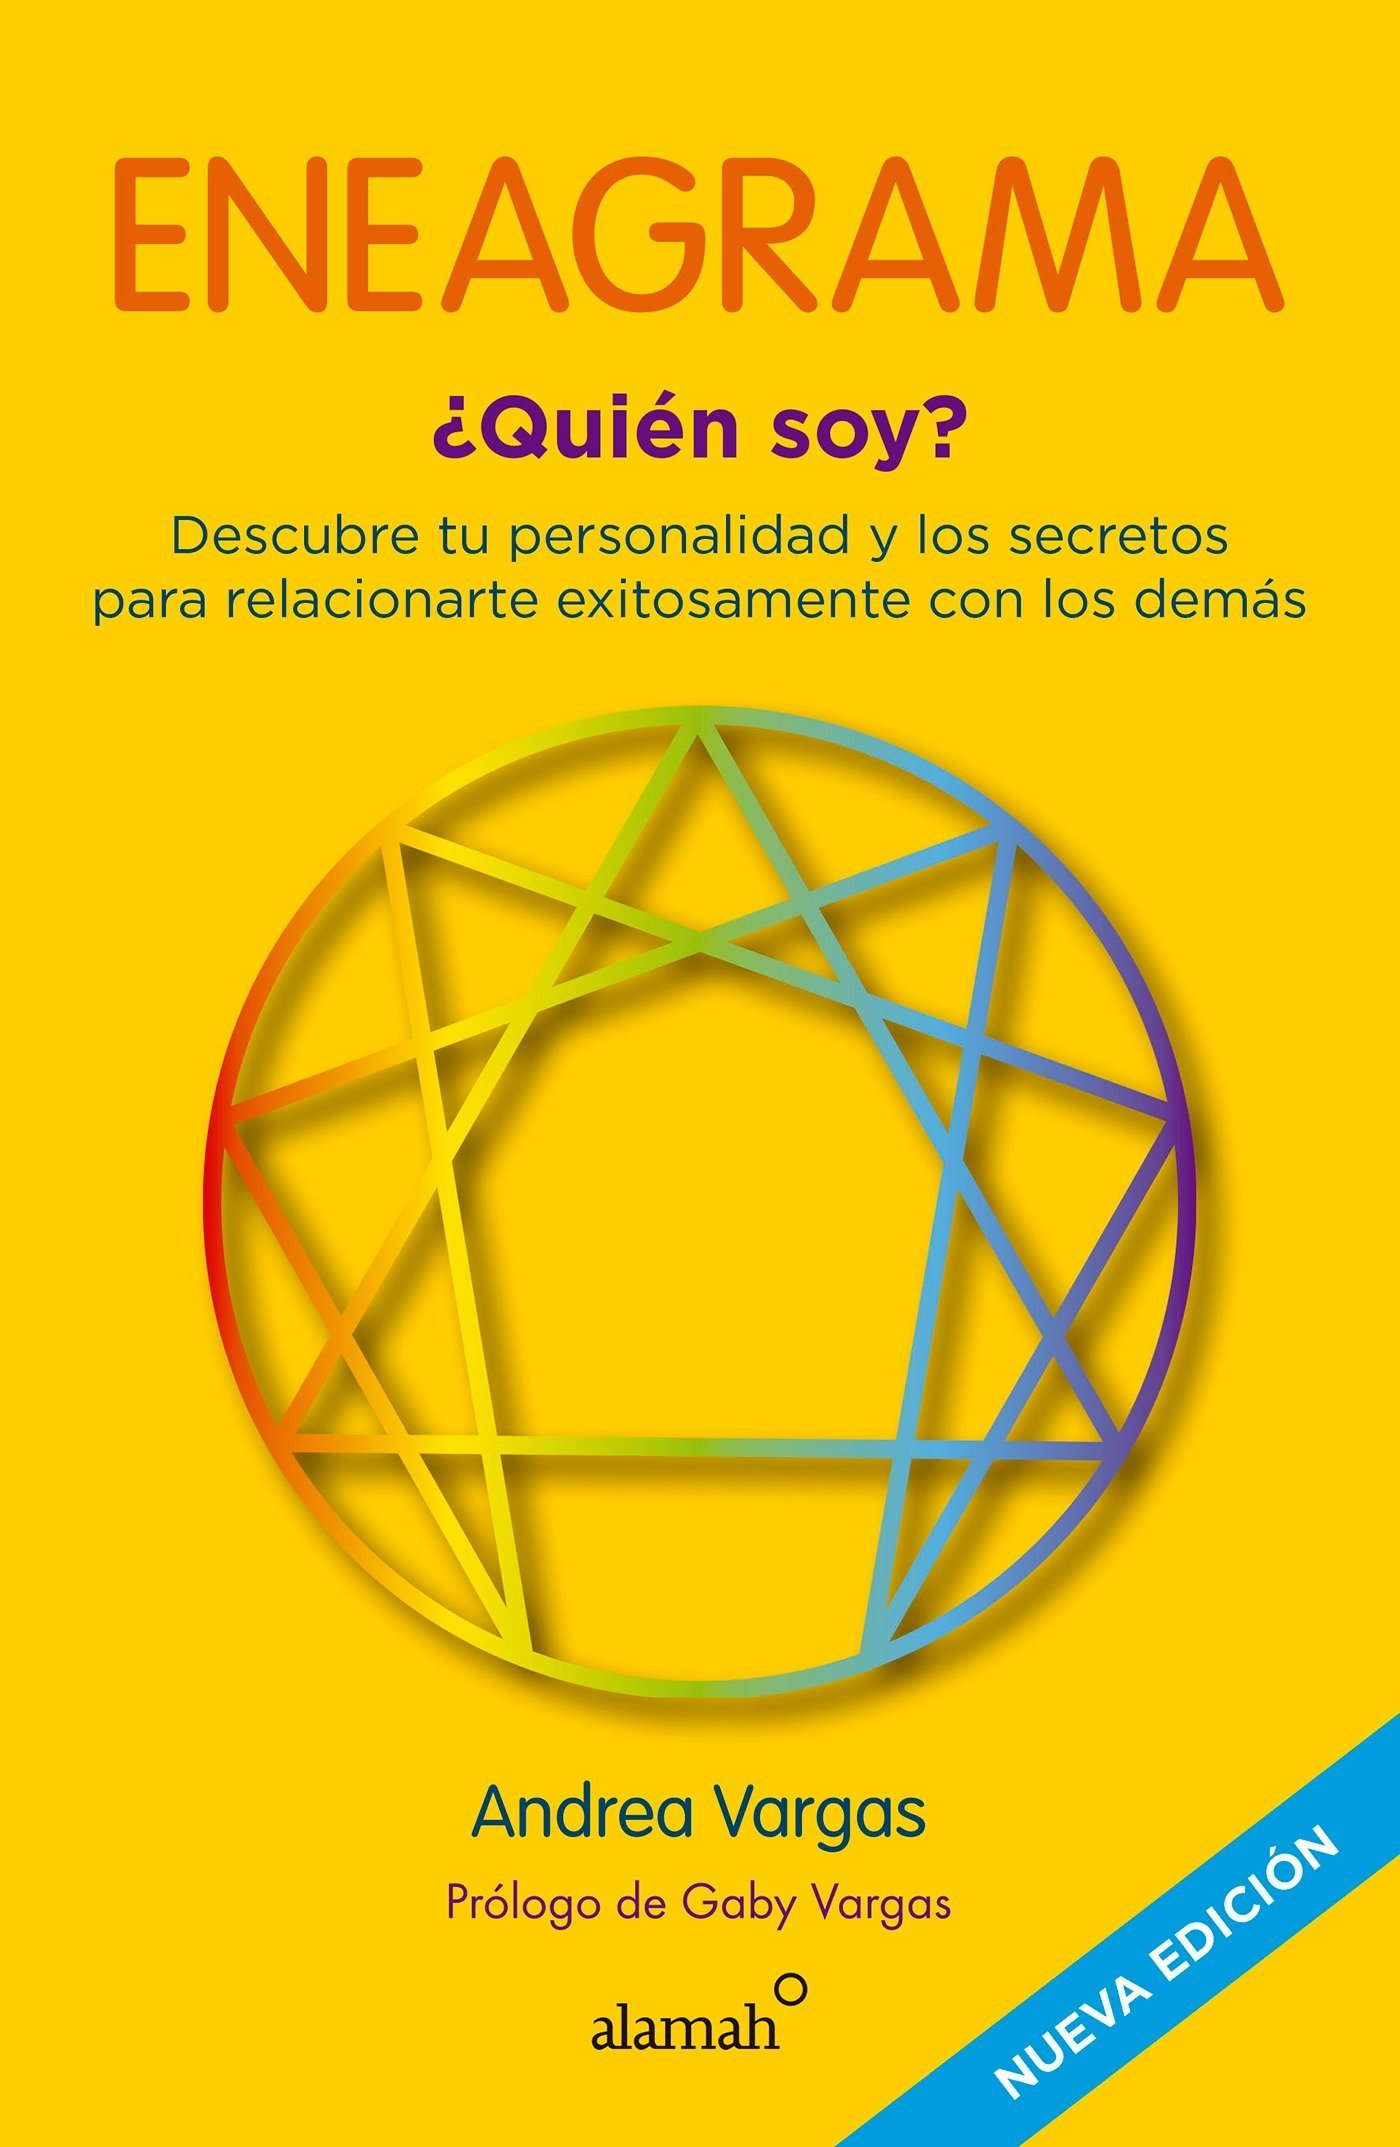 Eneagrama Quién Soy Enneagram Who Am I Spanish Edition Vargas Andrea 9786073132336 Books